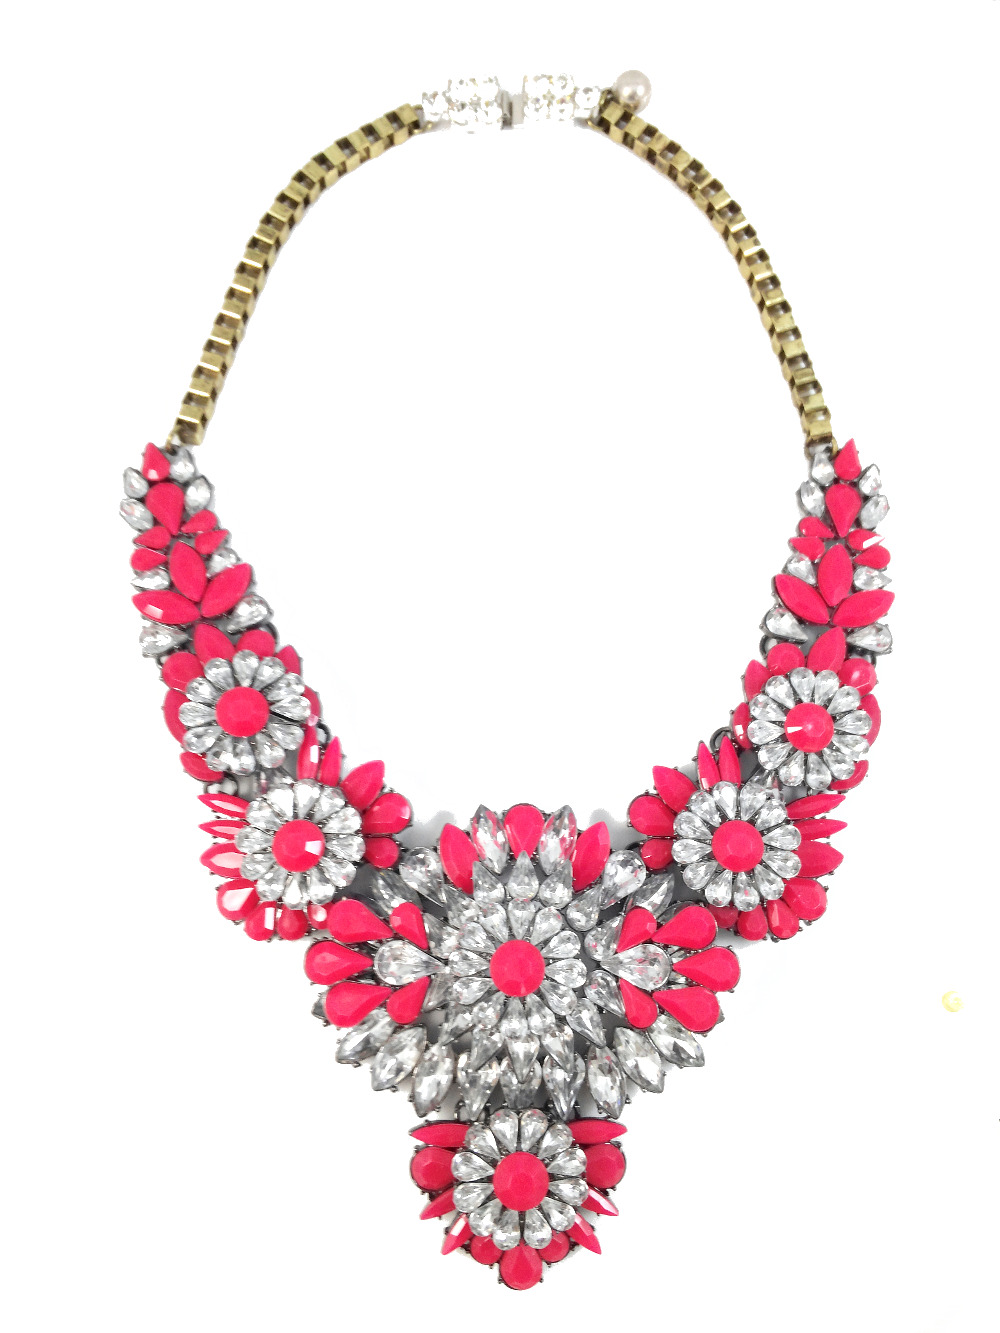 larger p flower alcantara maroon shourouk necklace image